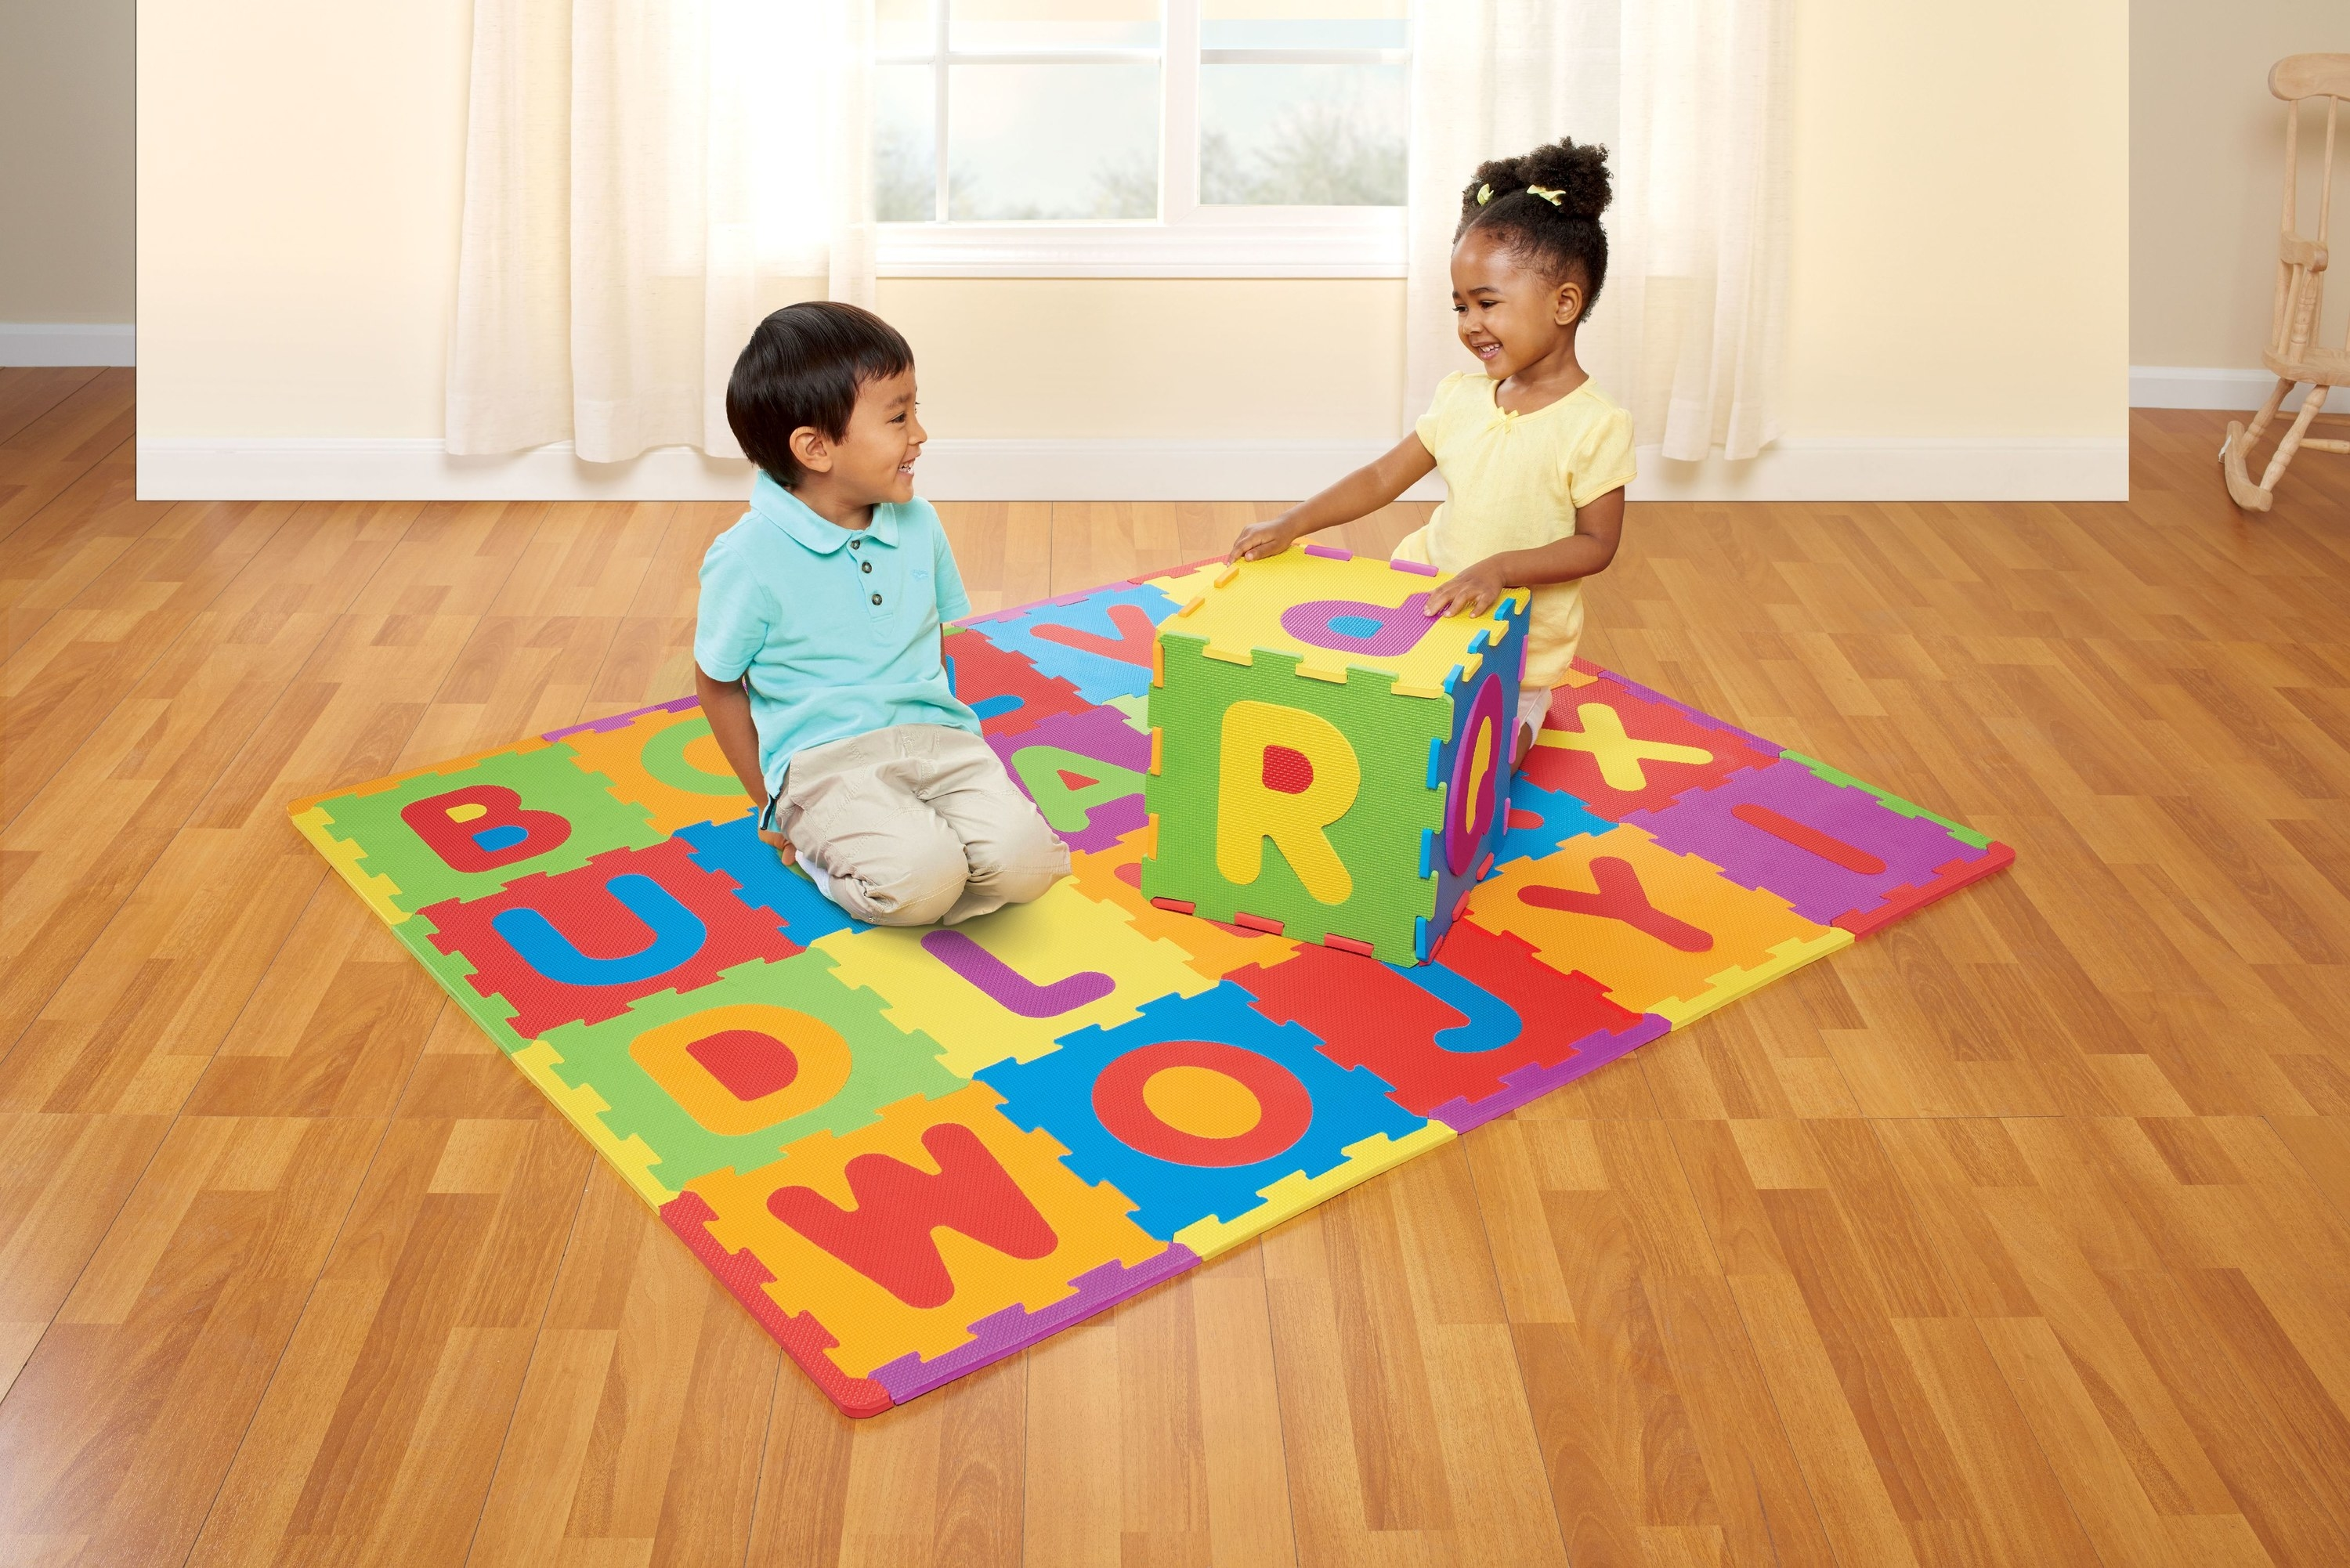 Two children on the brightly colored mat